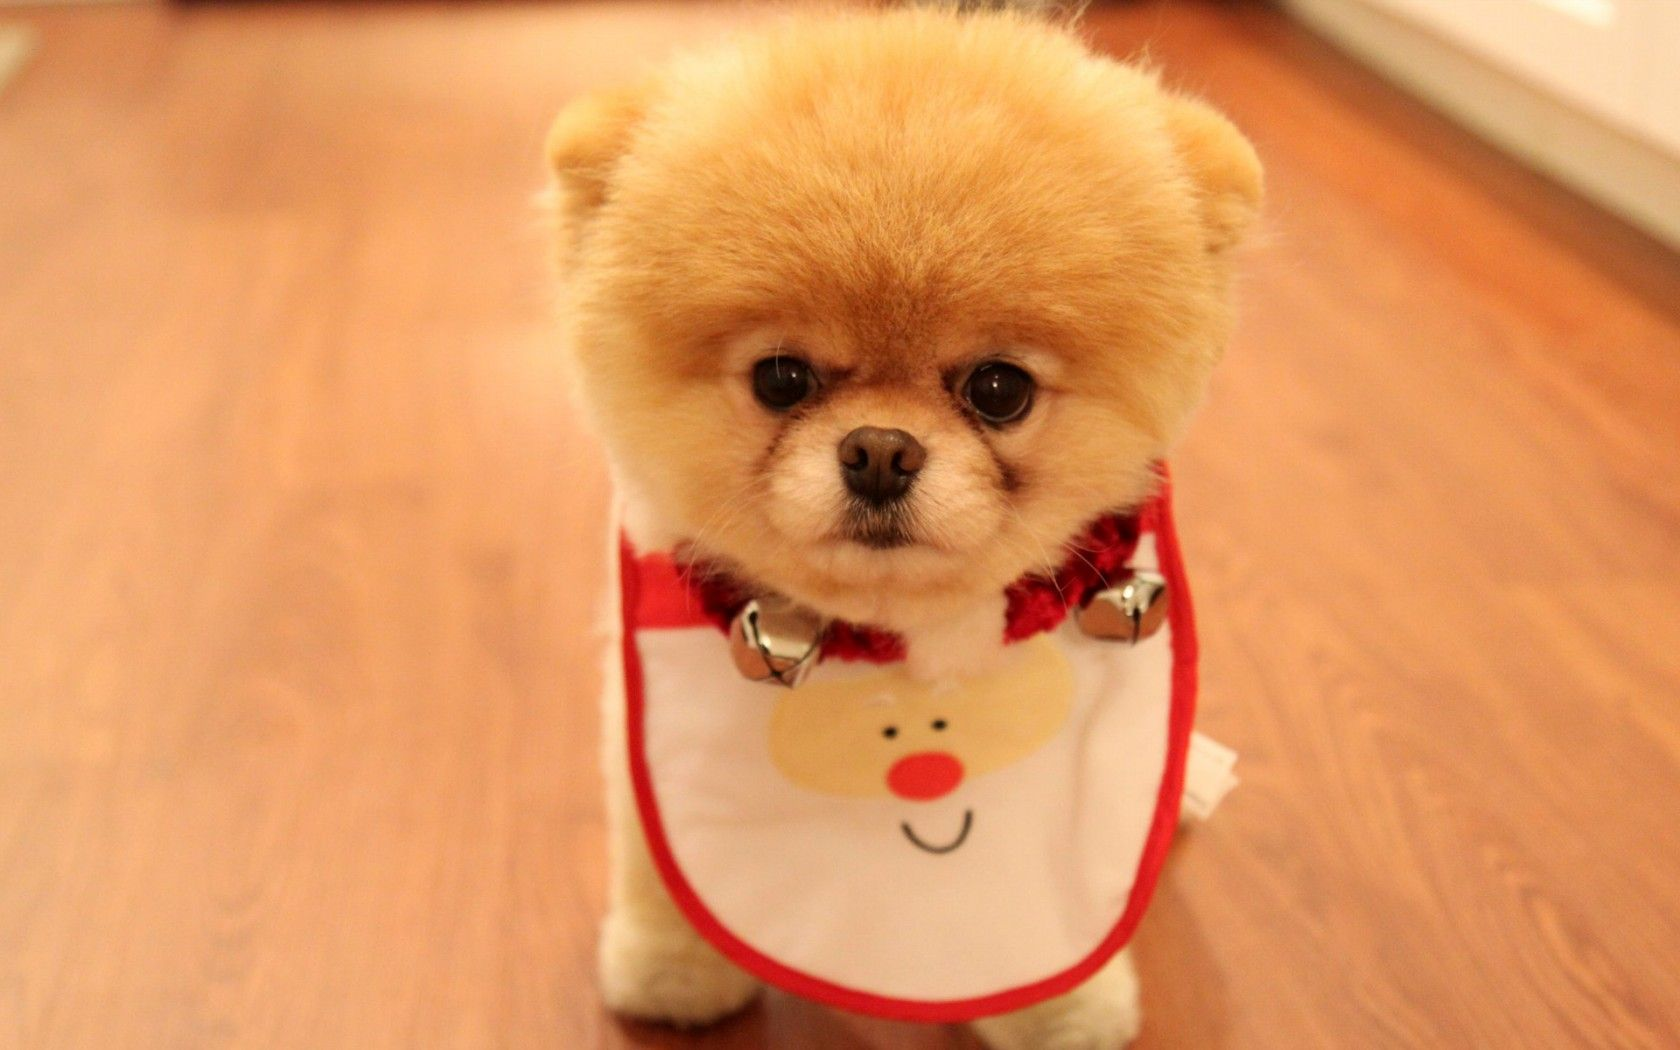 Download Puppies Cute Animal Animals Hd Wallpaper 1680x1050 Full Hd Wallpapers Cute Animals Cute Dogs Boo The Dog